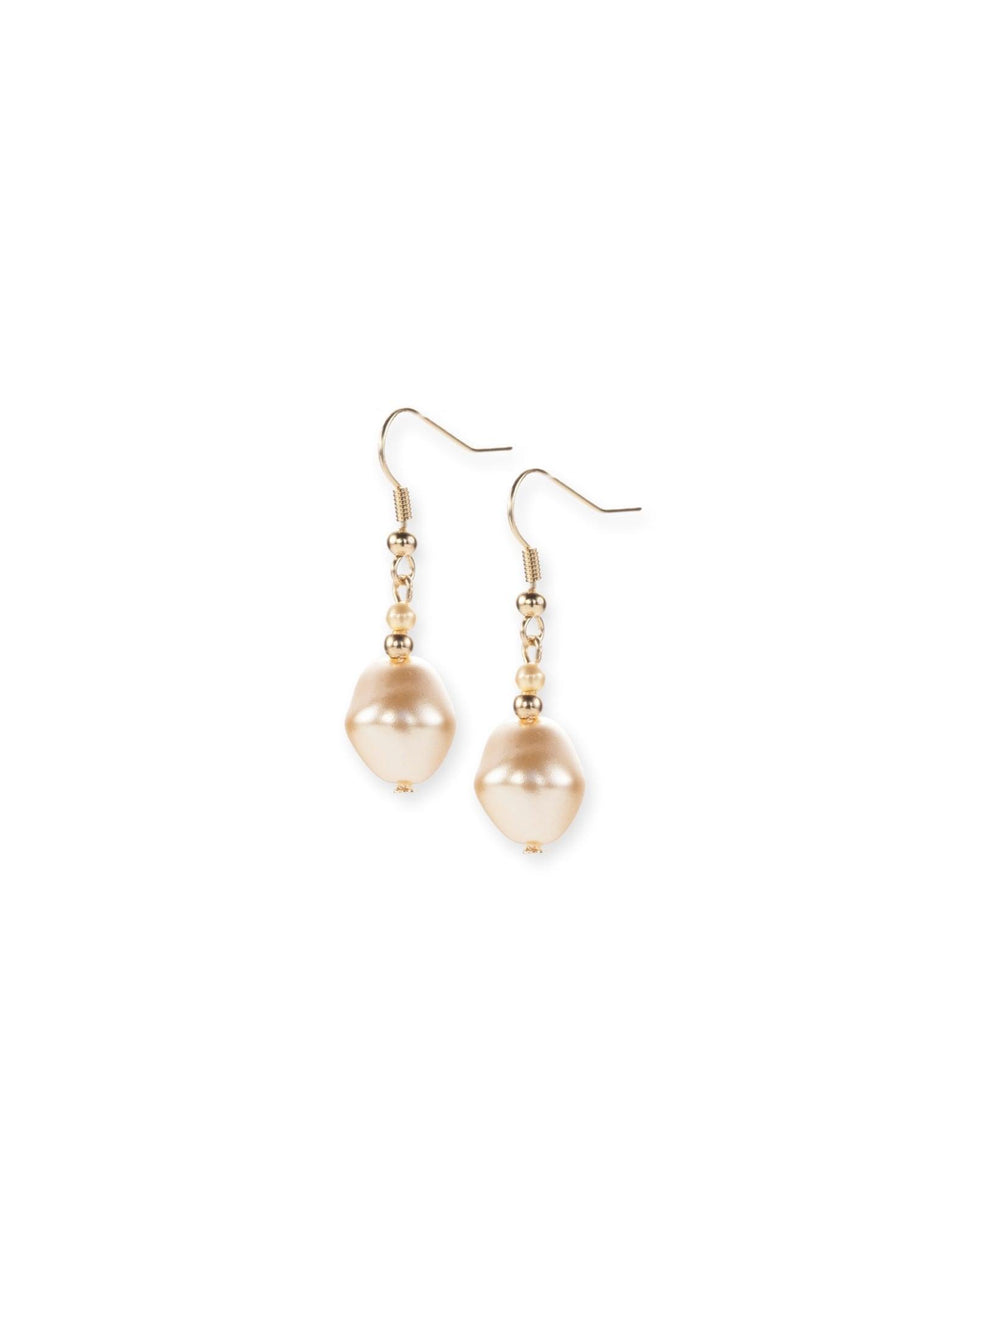 Magan Gold Earrings